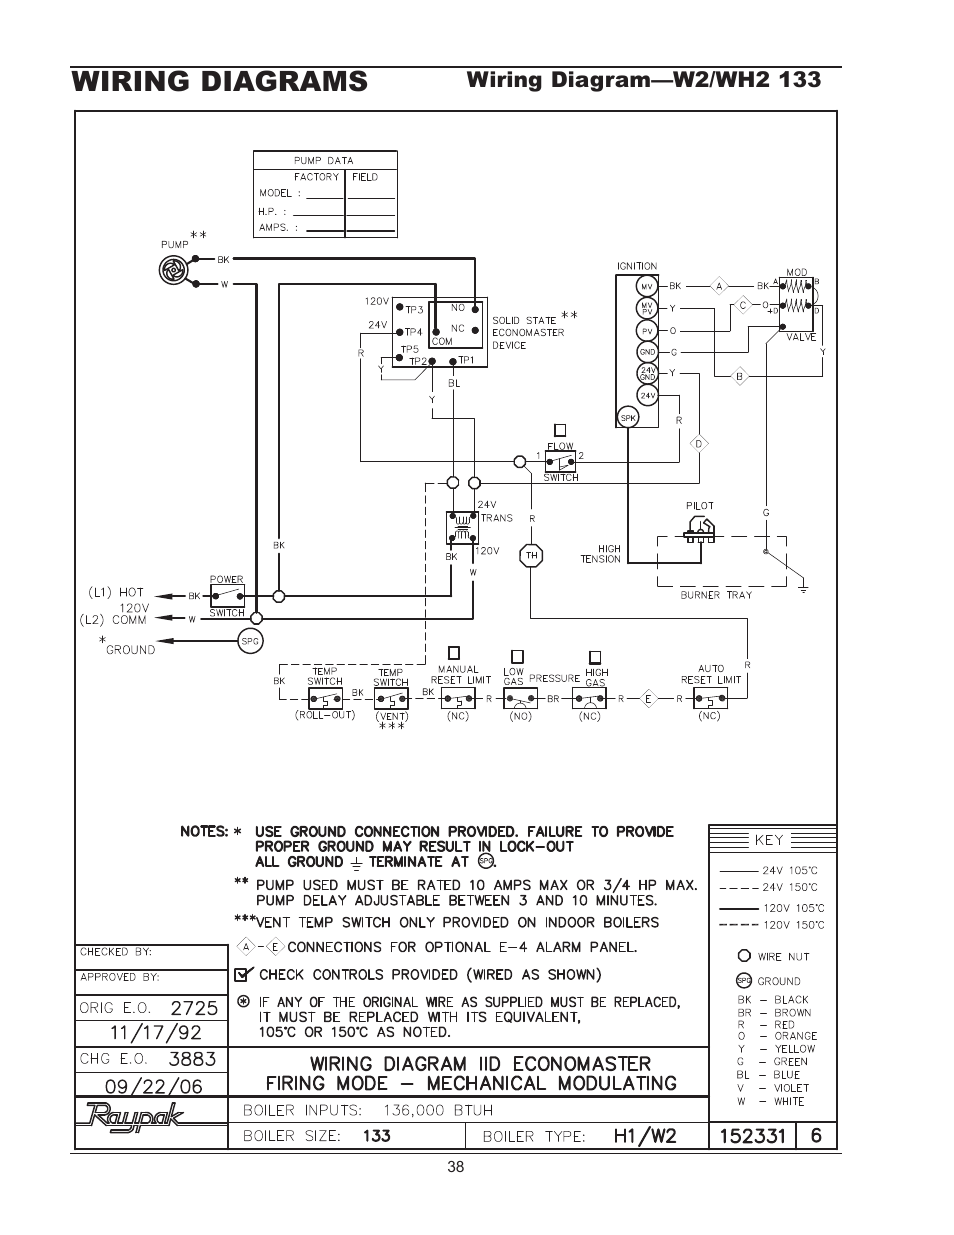 Raypak Wiring Diagram 21 Images Diagrams Boiler 183 1334001 Page38 Wh1 0181 0261 2100